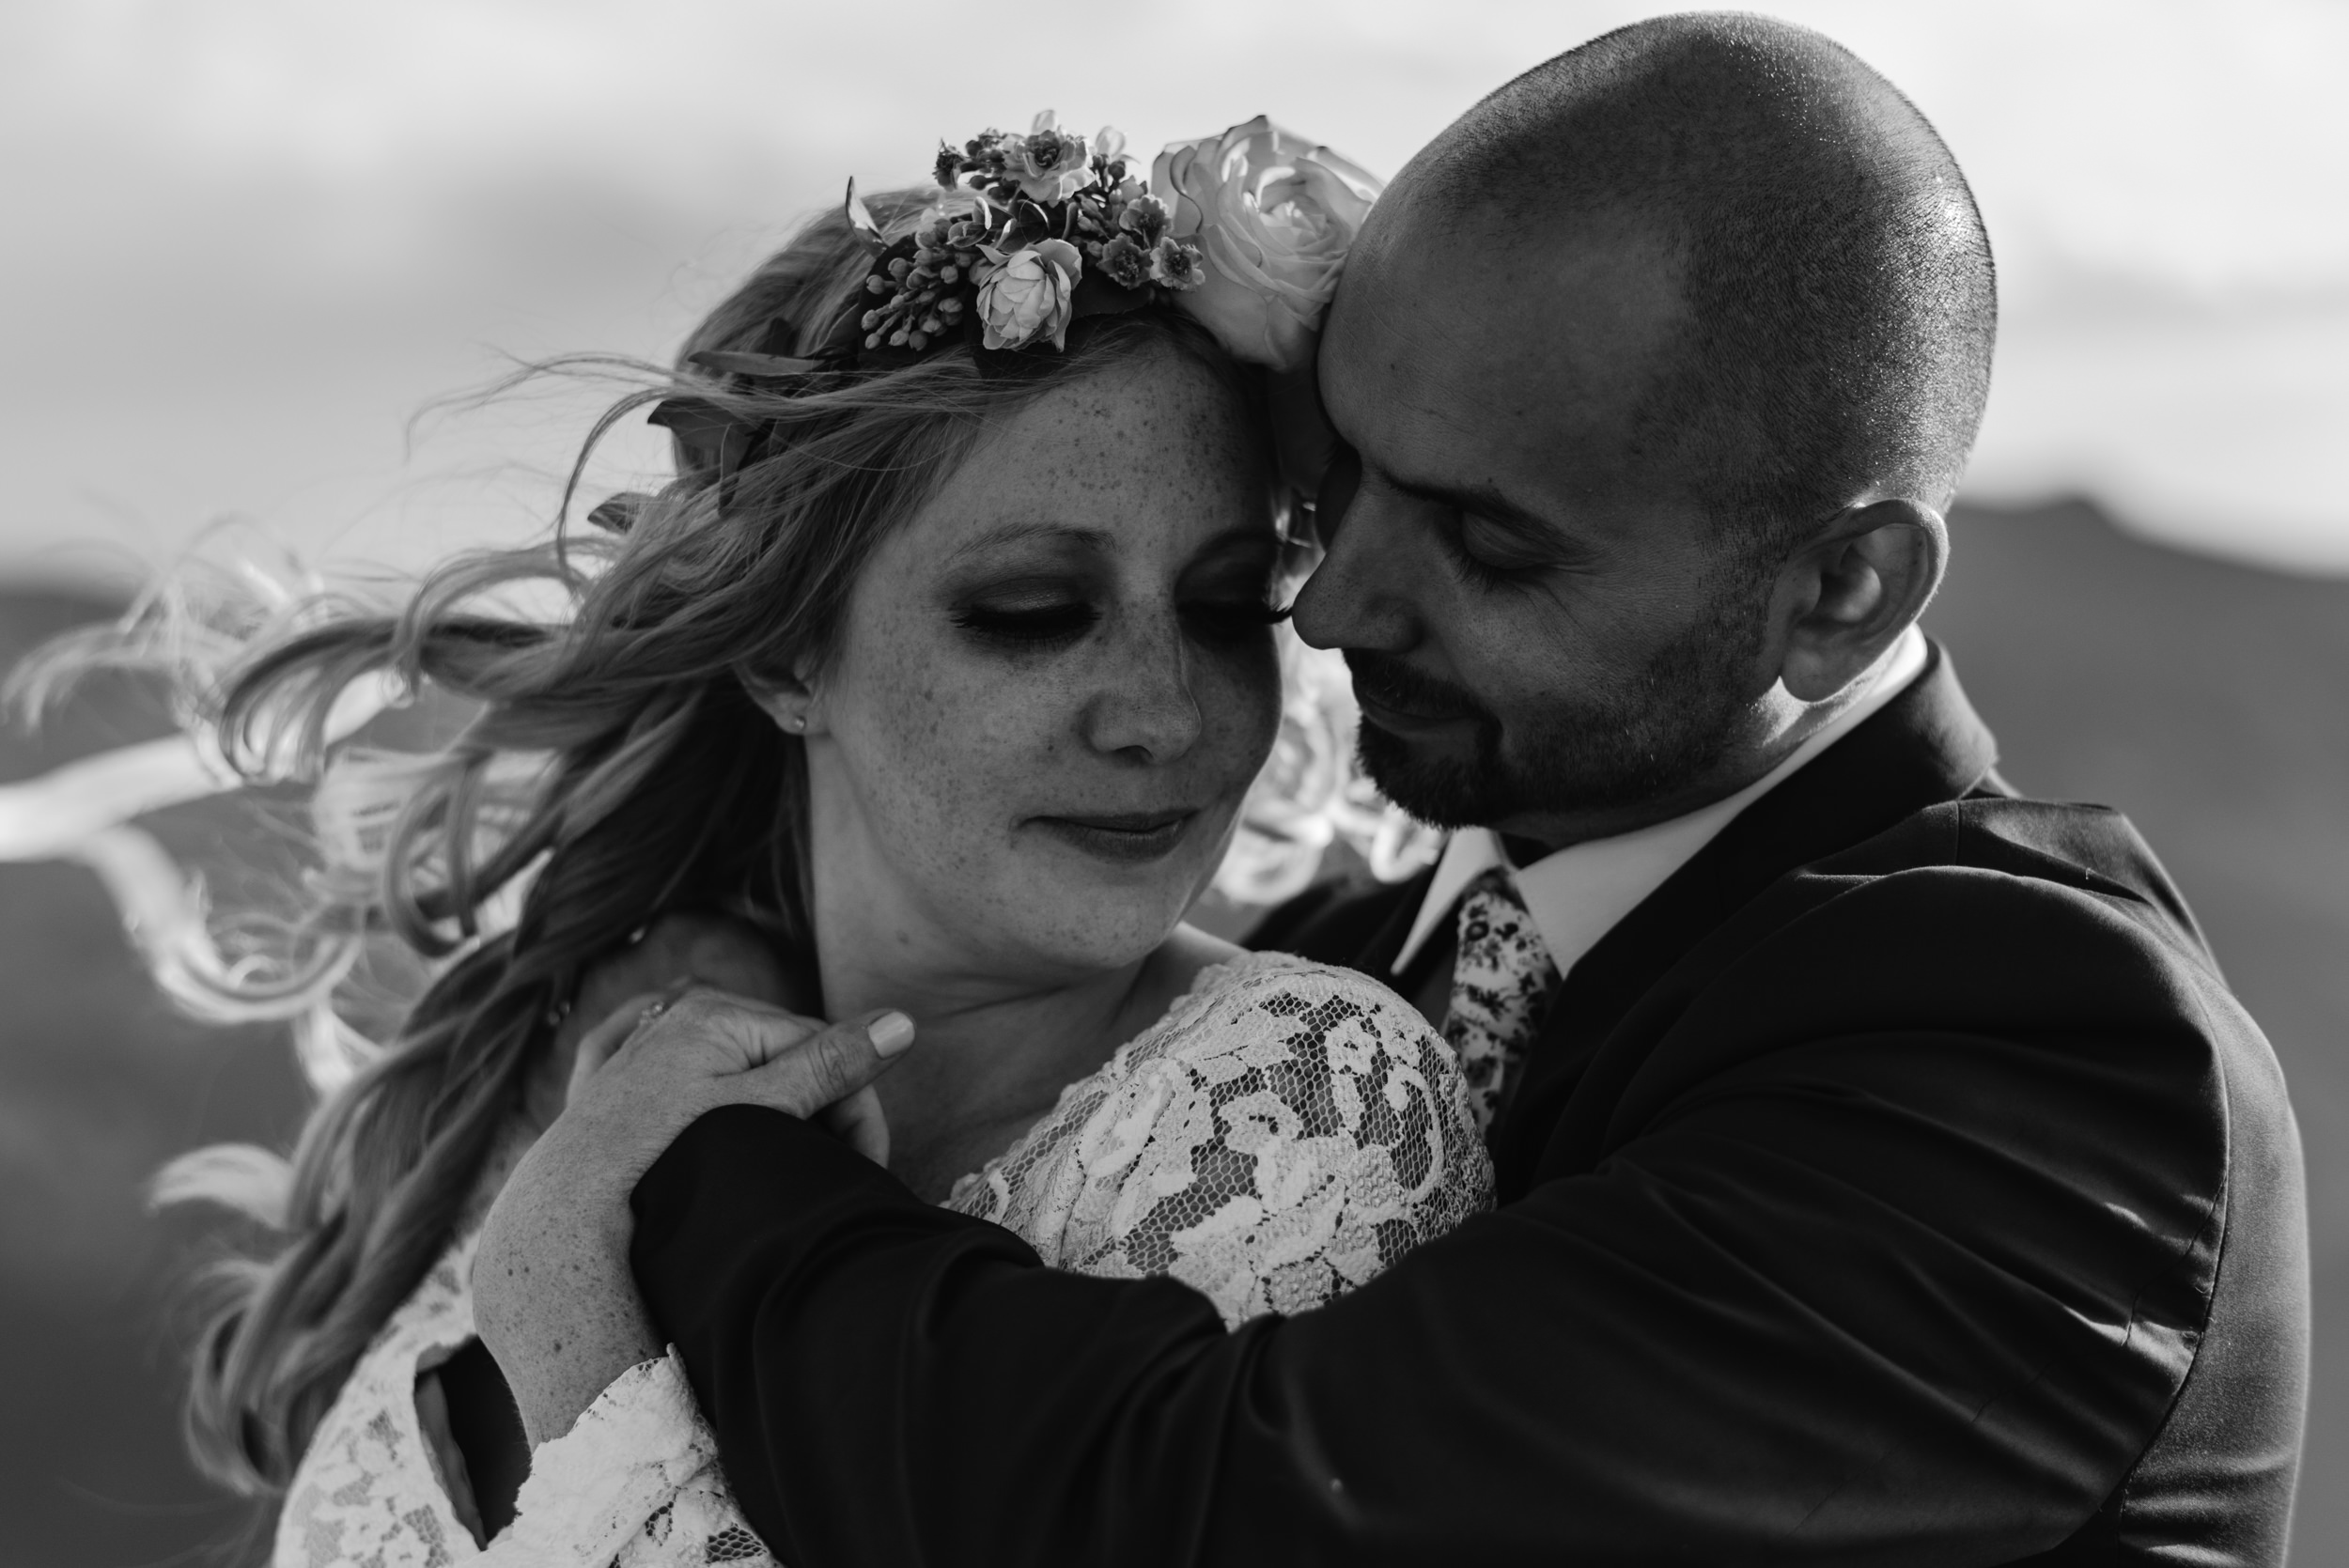 Colorado elopements and weddings for laid back couples. Mountain wedding photographer.